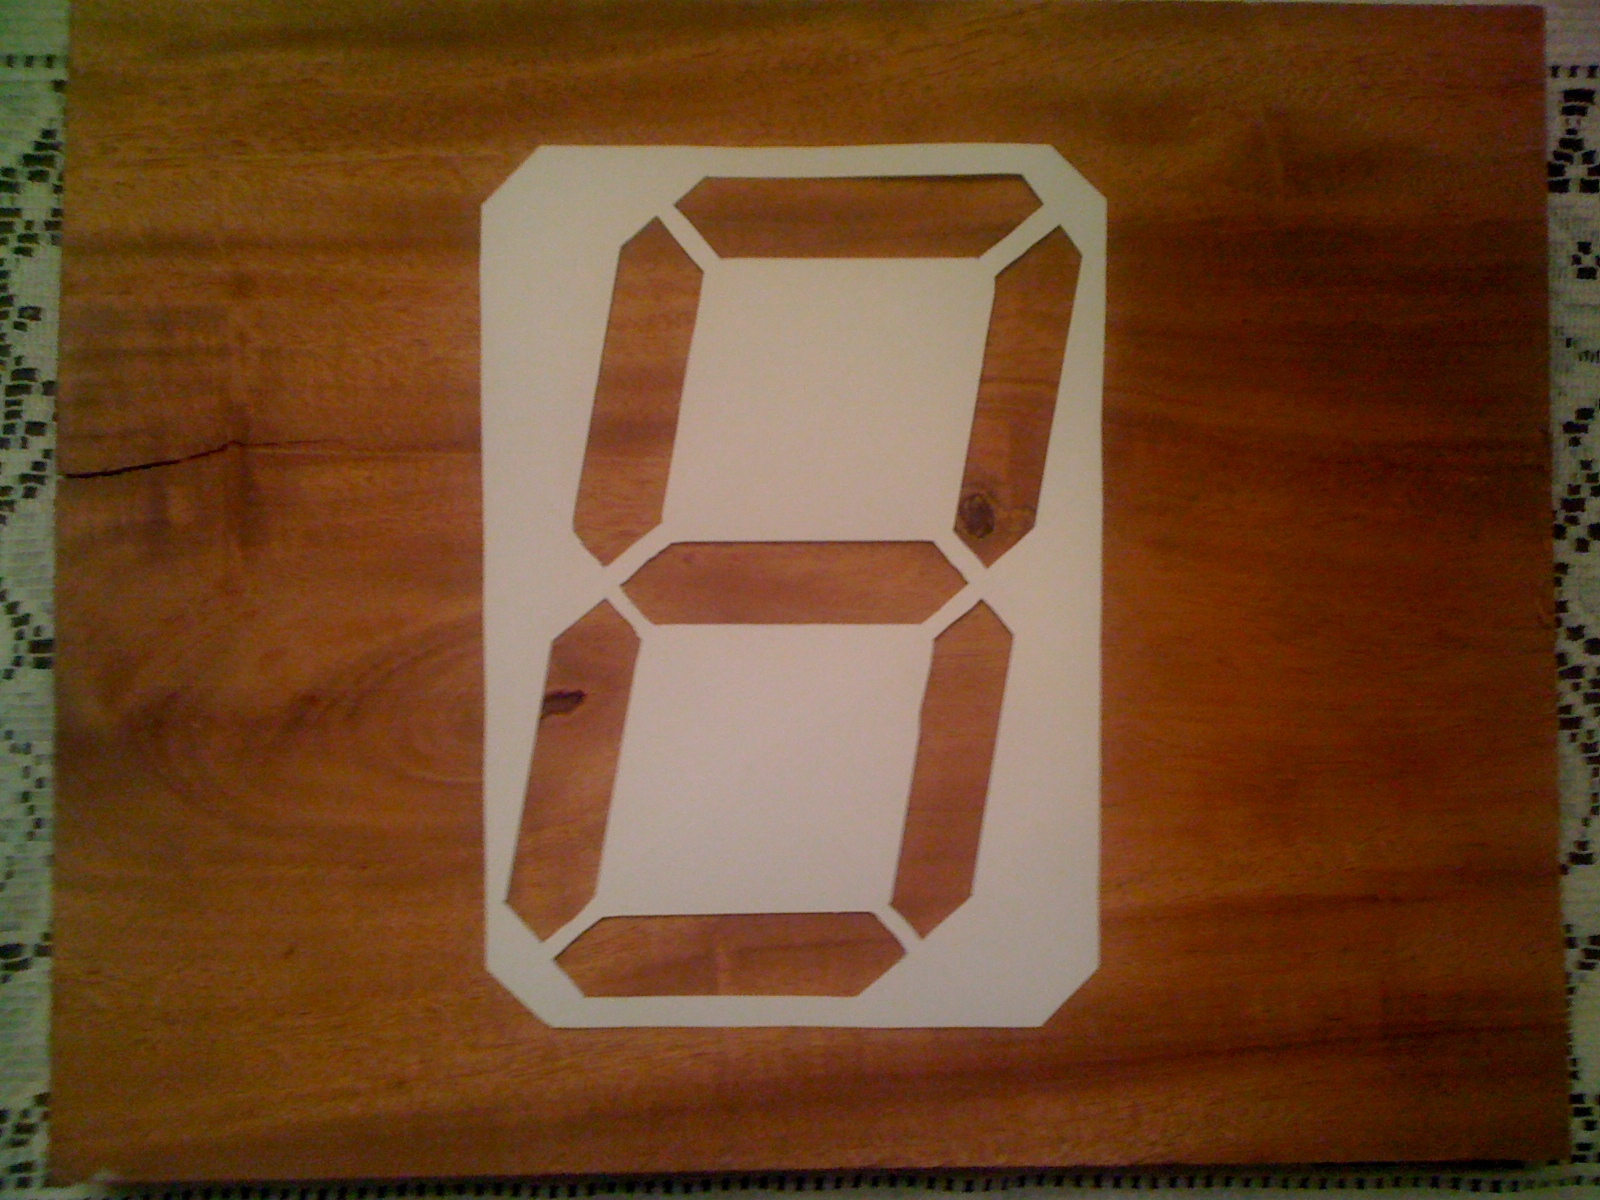 4-Foot Wooden Digital Clock